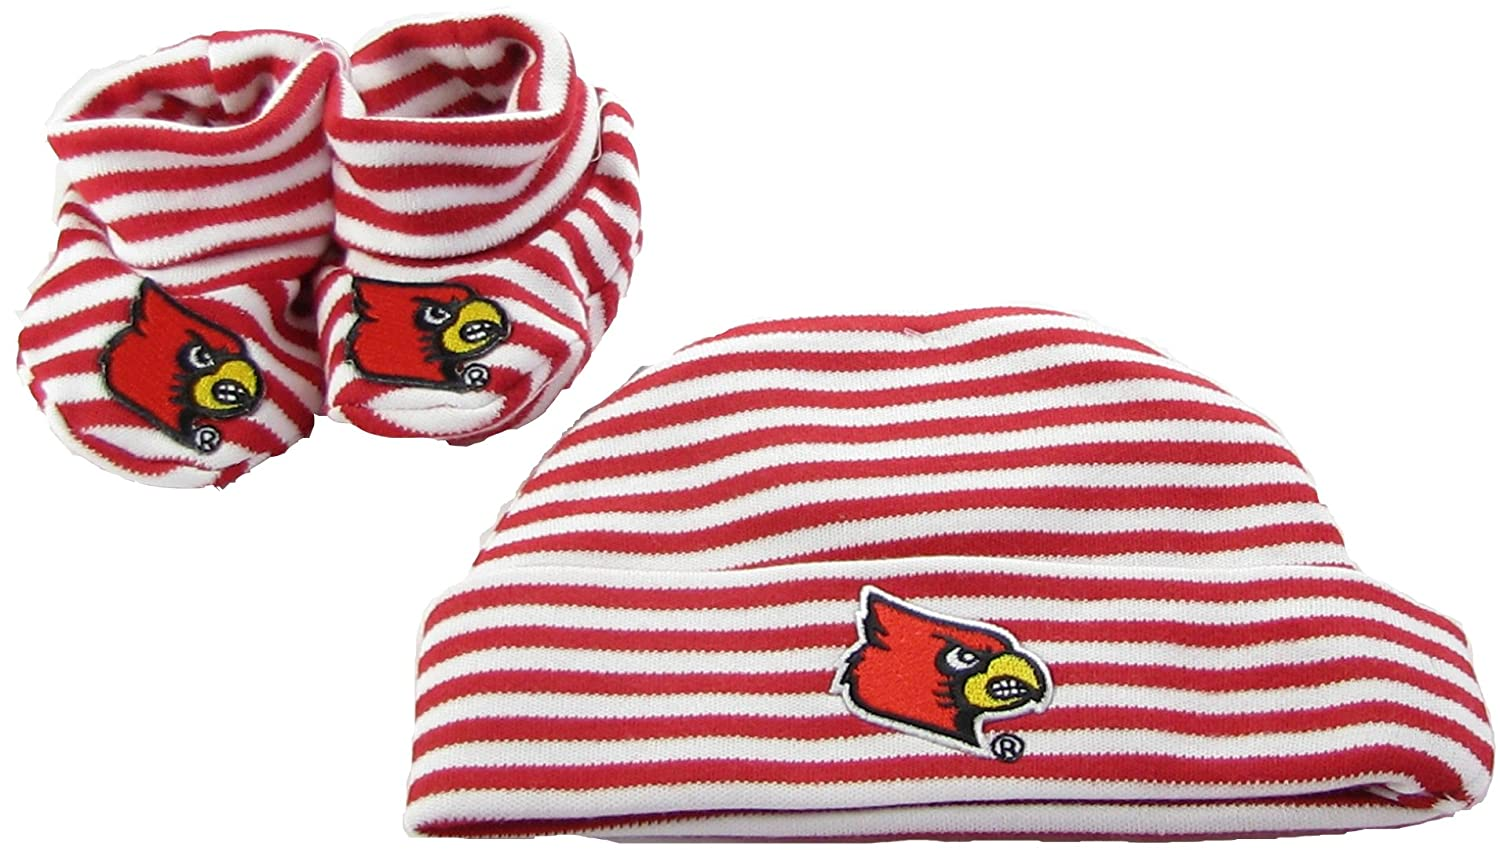 168cbb3b3 Amazon.com: Louisville Cardinals Red Striped Infant Newborn Hat ...